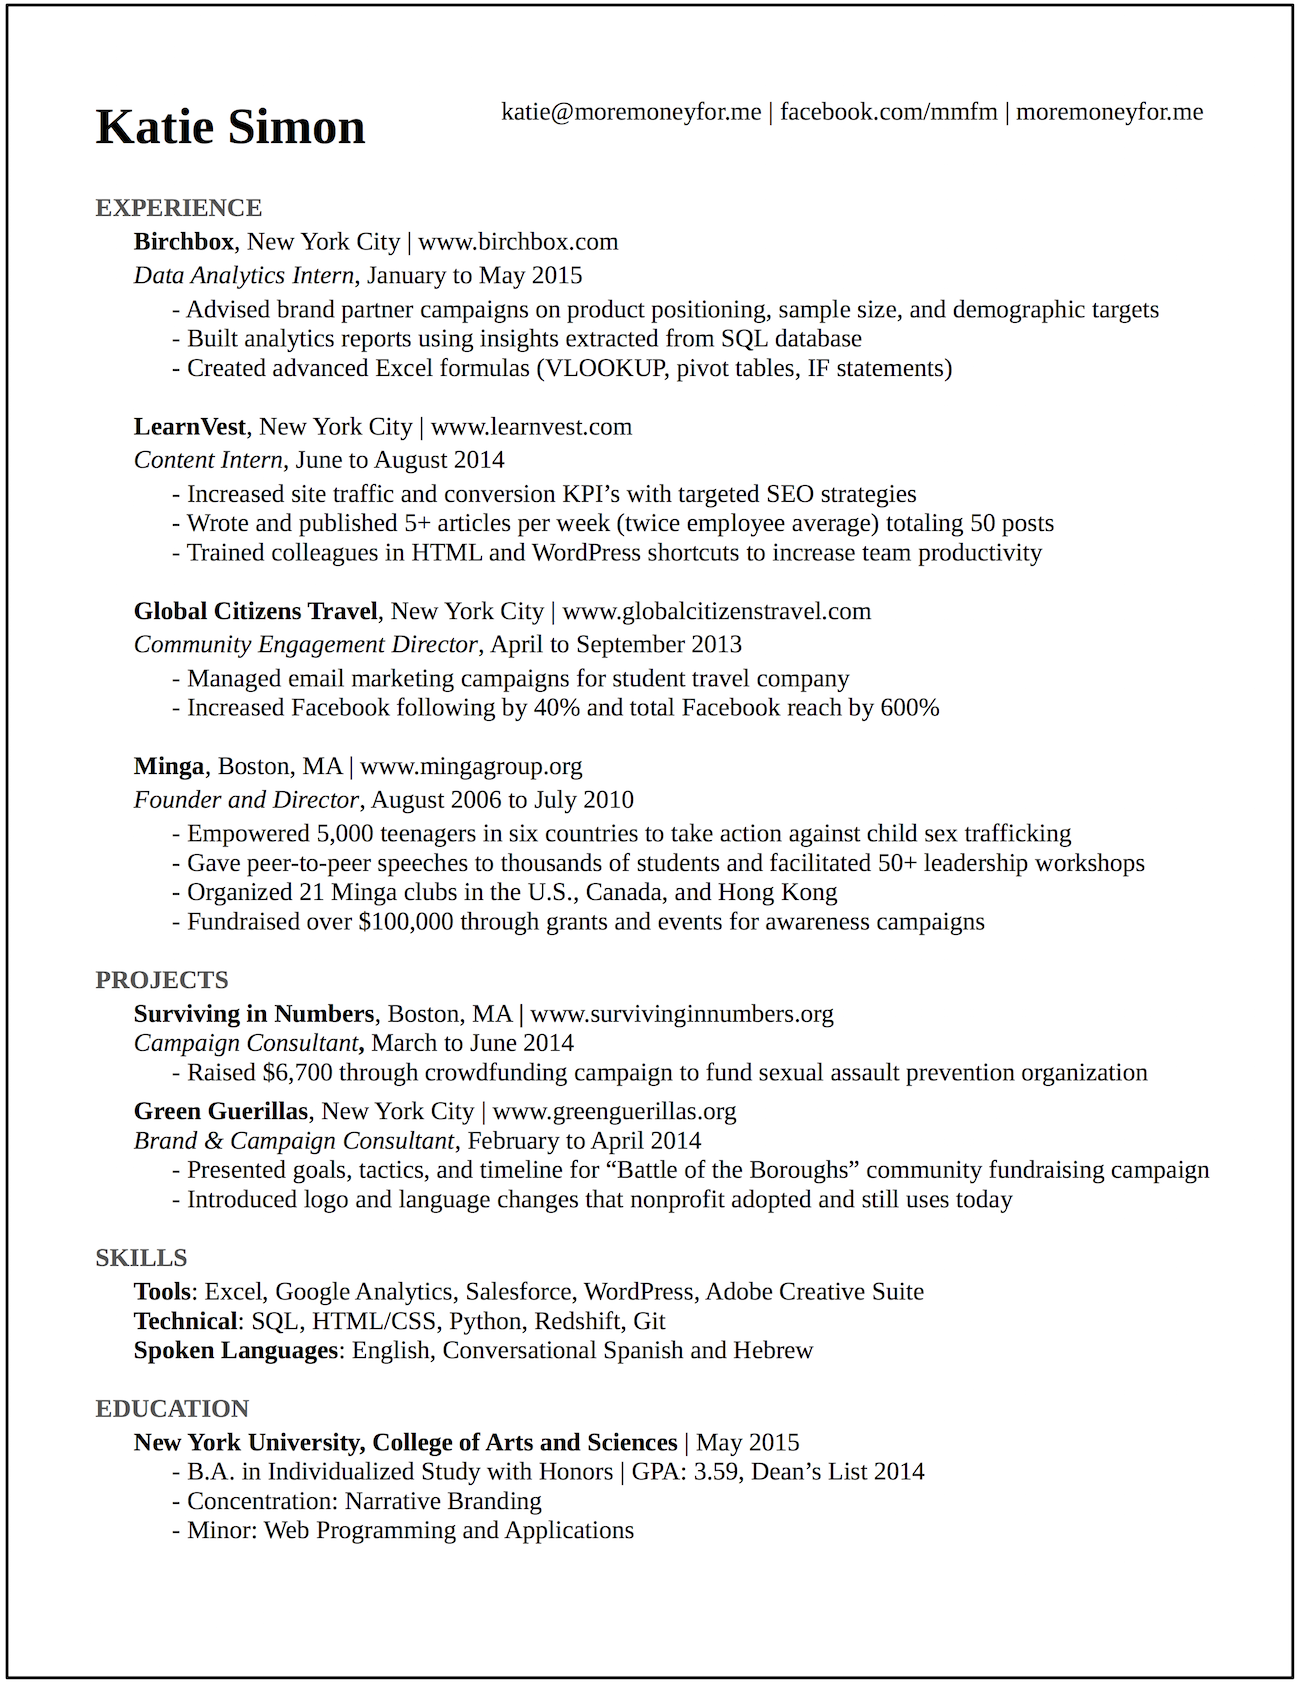 This Resume Landed Me Interviews At Google Buzzfeed And More